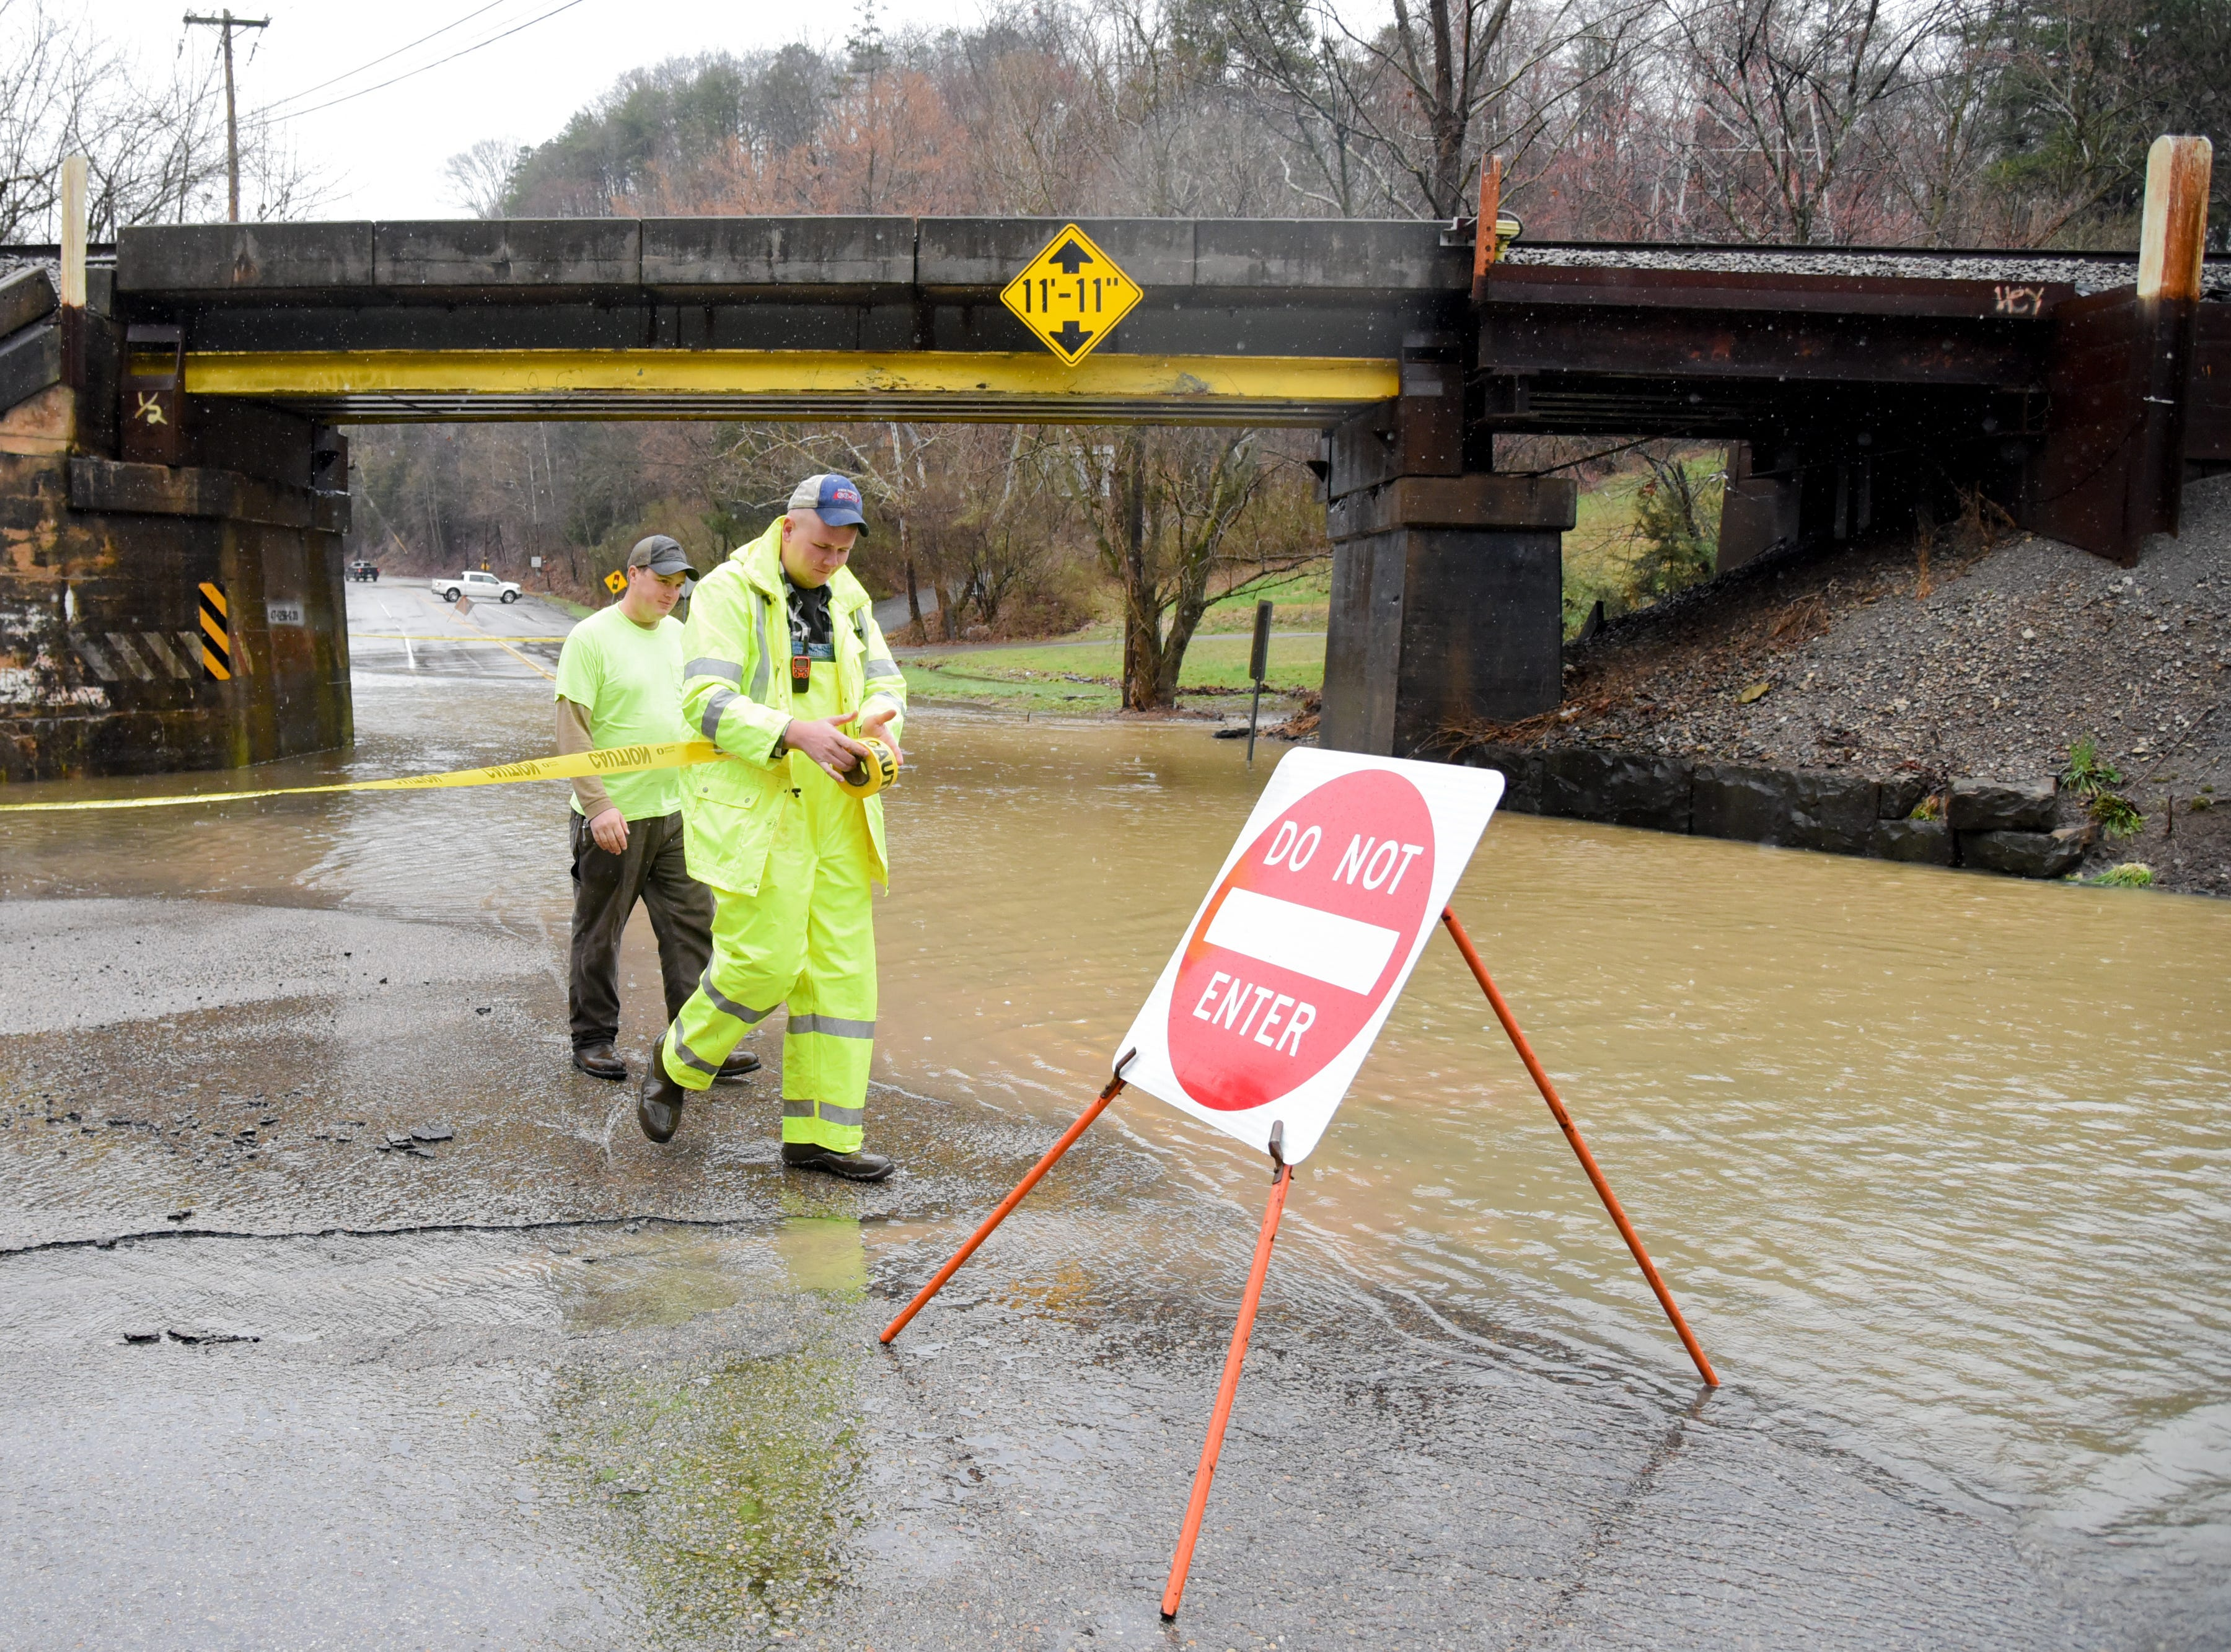 Knox County Highway Maintenance workers Chad Rutherford, left,  and Chad Ricker, right, close Central Avenue Pike at the intersection of Irwin Dr. due to floodwaters in Knox County Saturday Feb. 23, 2019. The Knoxville area could see between 2 and 3 inches of rain through the weekend.